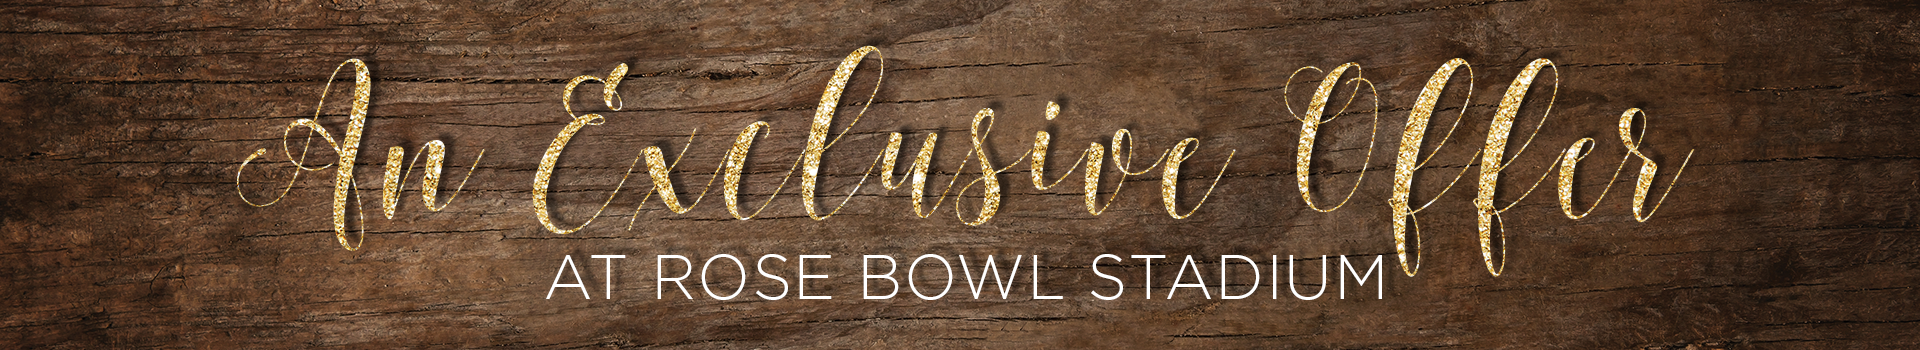 wp_exclusive offer banner_rose bowl